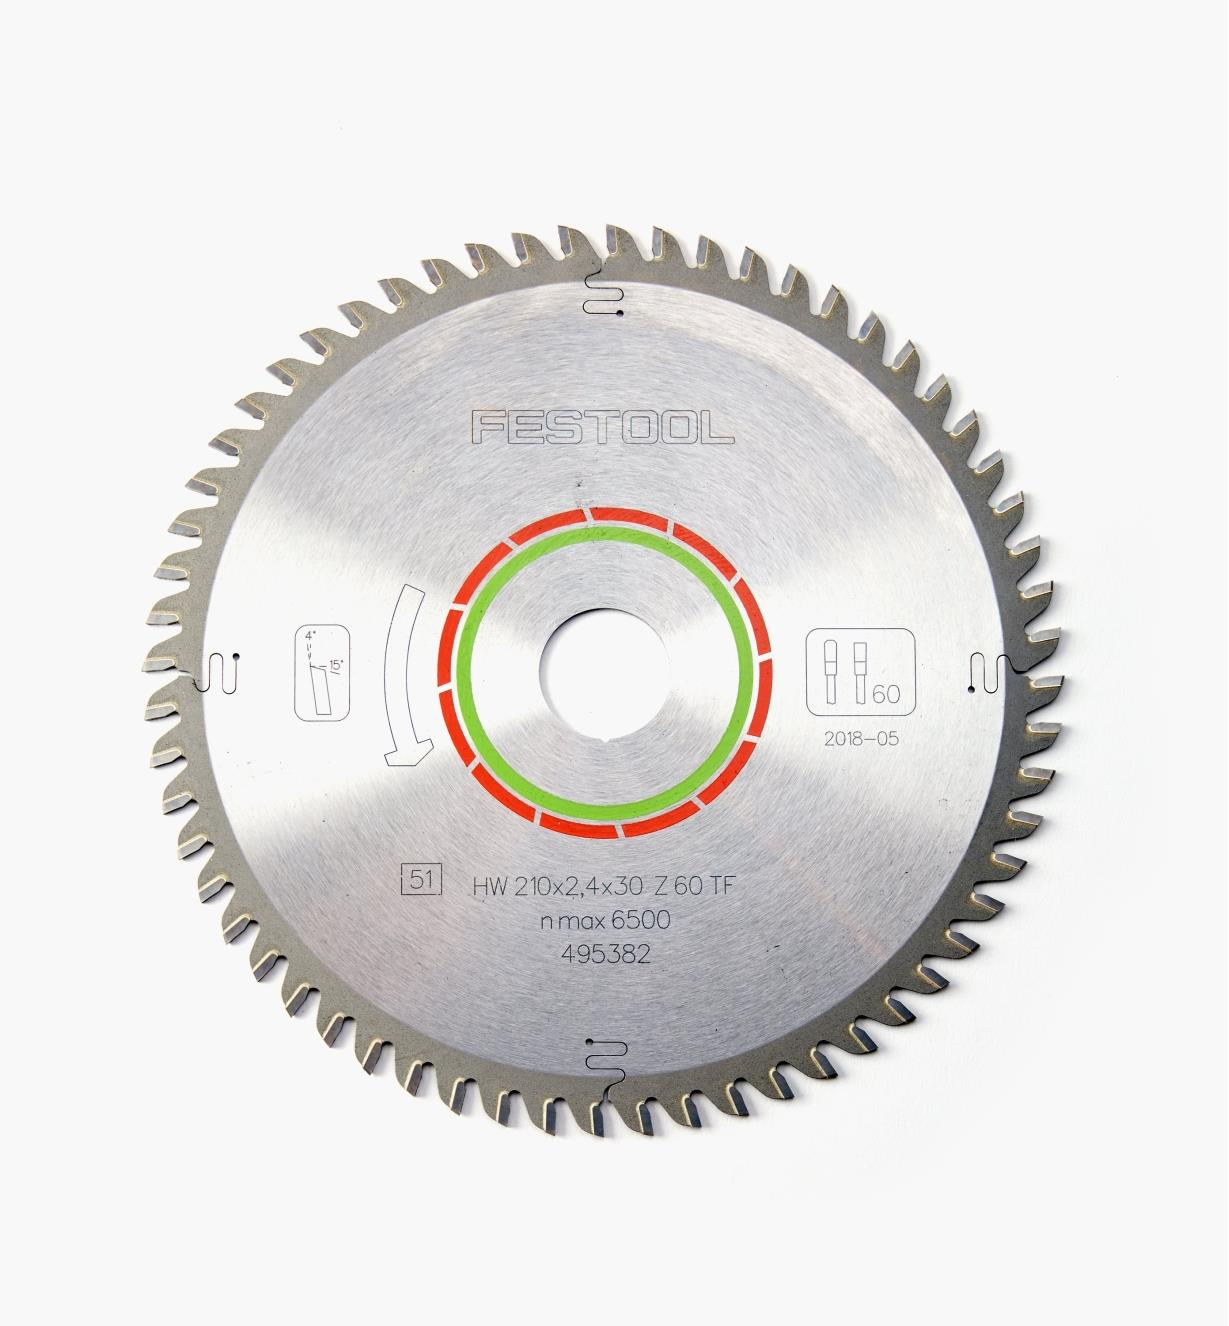 ZA495382 - Solid Surface/Laminate TS 75 Saw Blade